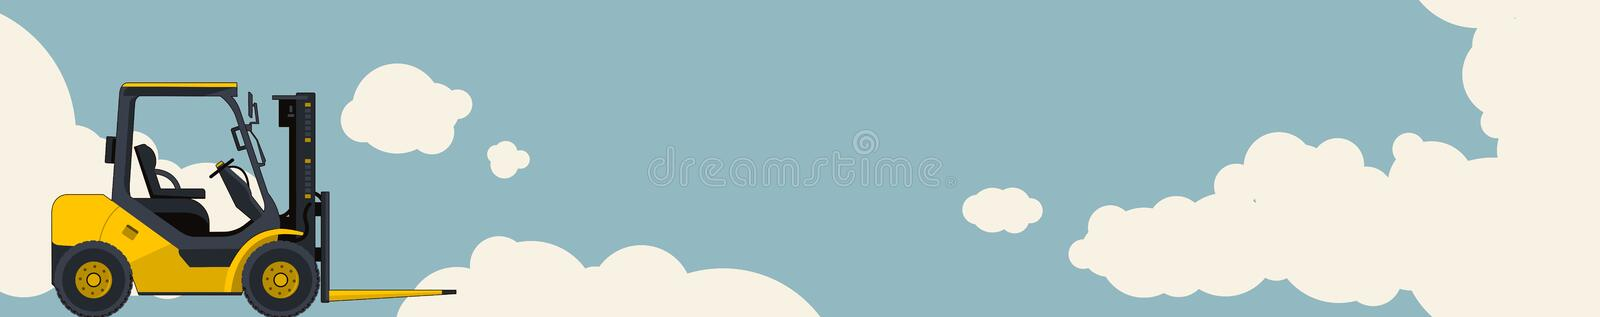 Yellow fork lift loader, sky with clouds in background. Horizontal banner layout with small excavator, crane. Yellow fork lift loader, sky with clouds in royalty free illustration